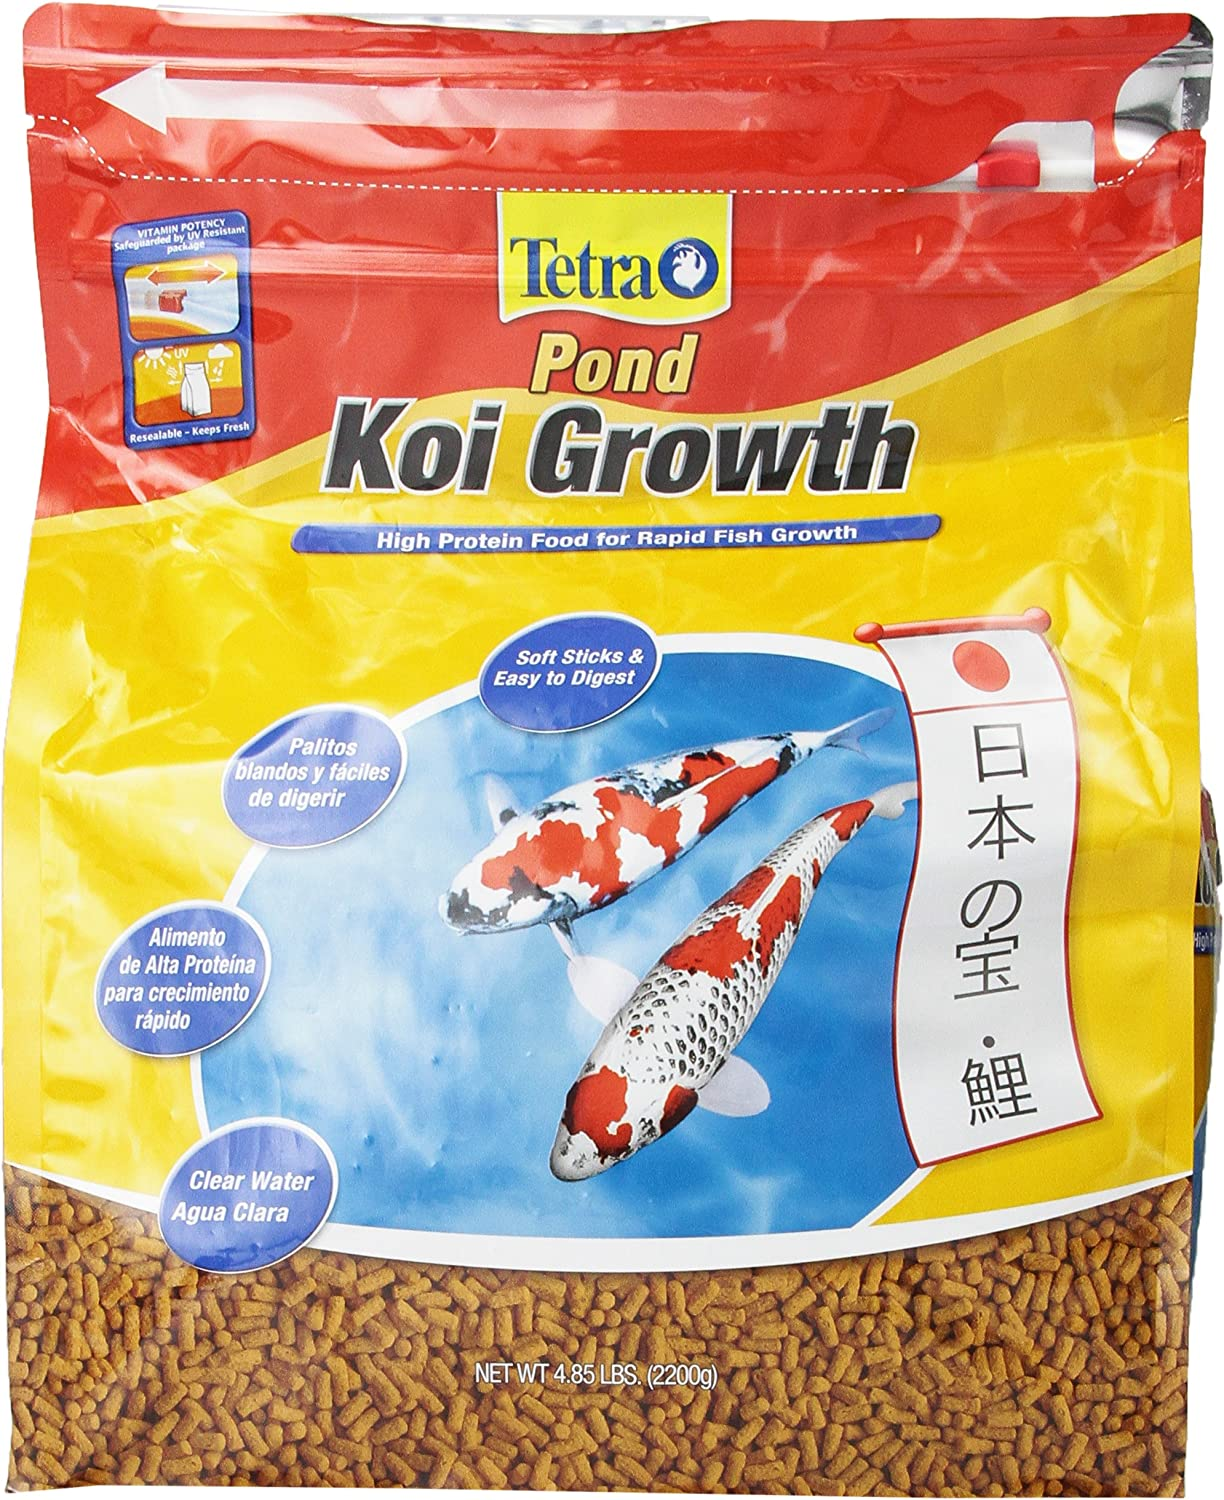 Tetra Pond High Protein Koi Growth Sticks Food